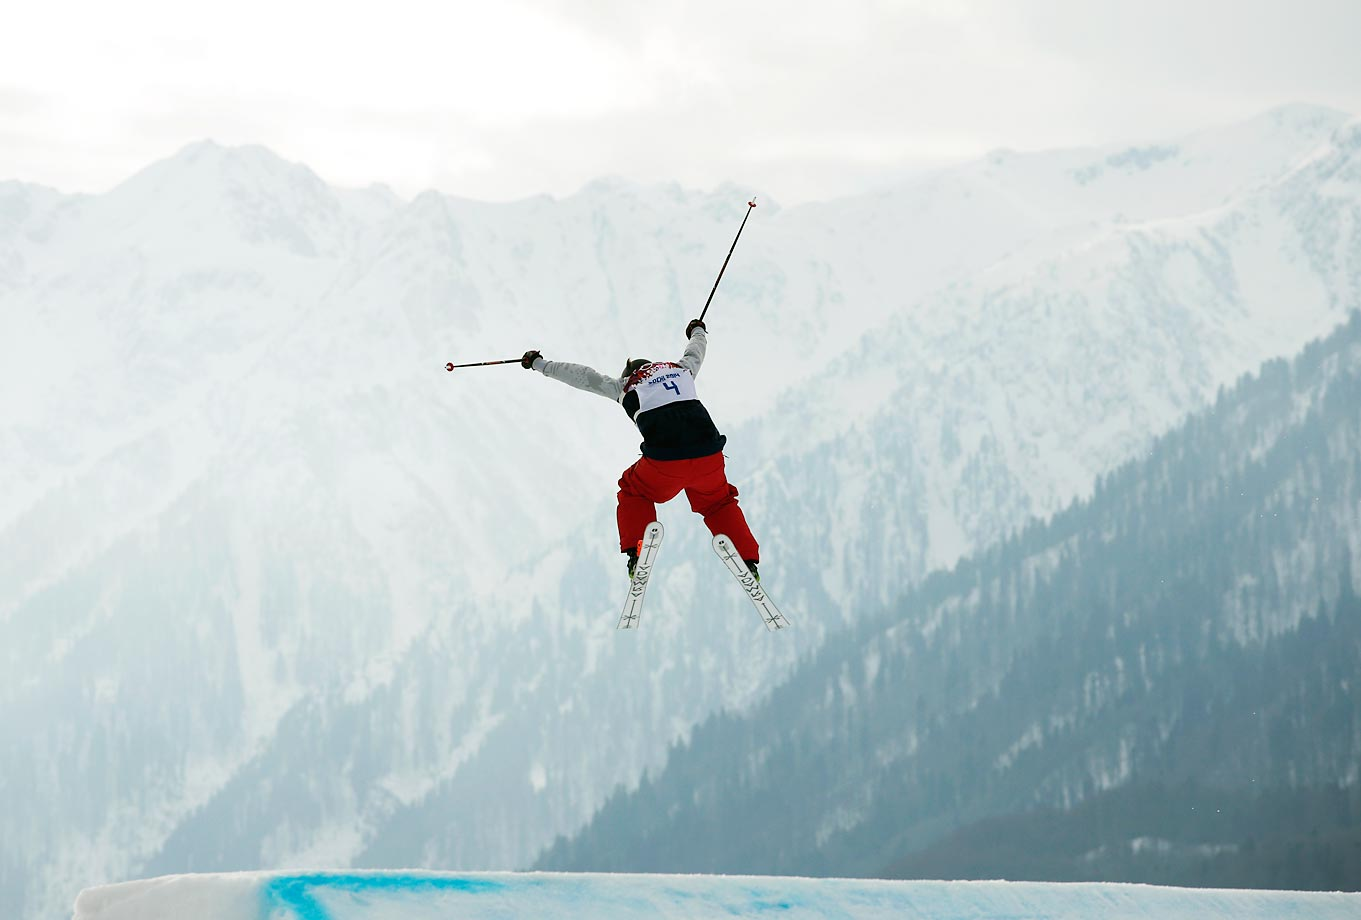 United States skier Devin Logan jumps during the women's freestyle skiing slopestyle qualifying at the Sochi Olympics. Logan won the silver medal.